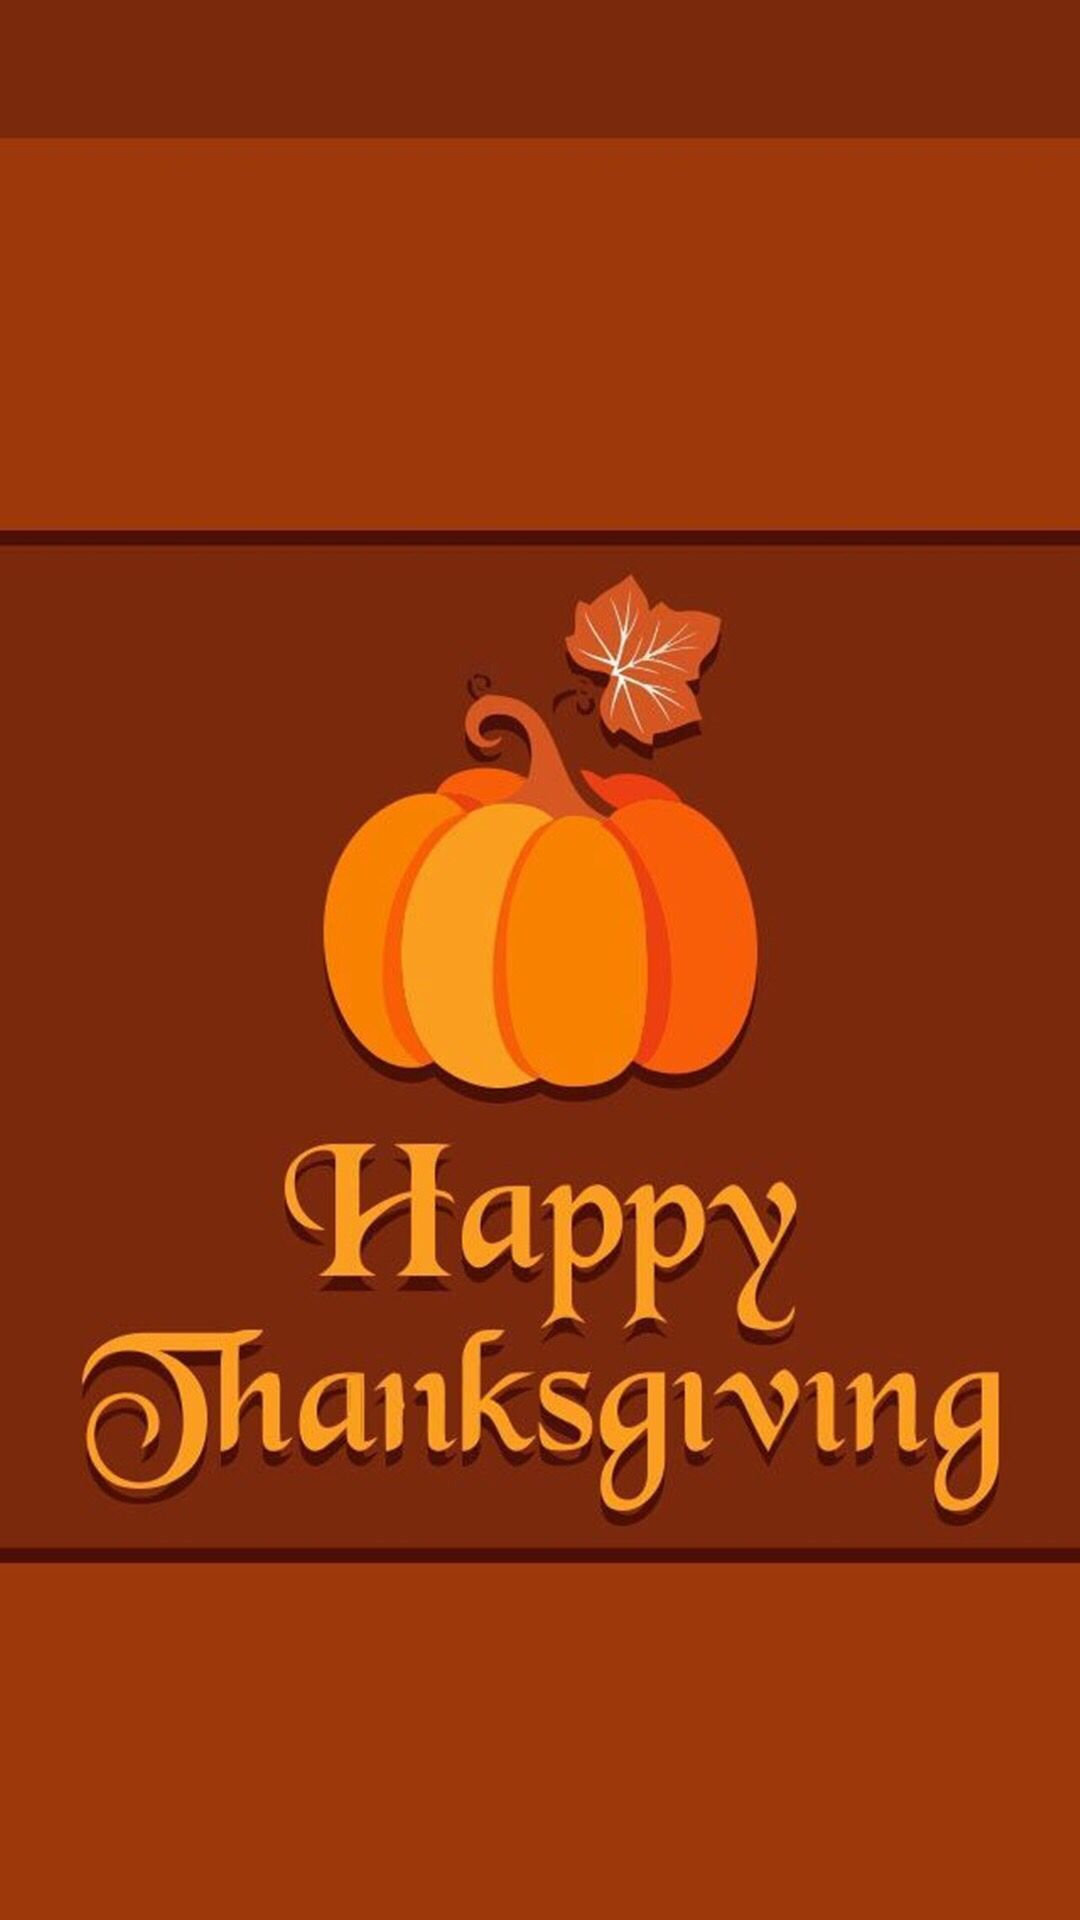 Thanksgiving Wallpaper » Hupages » Download Iphone